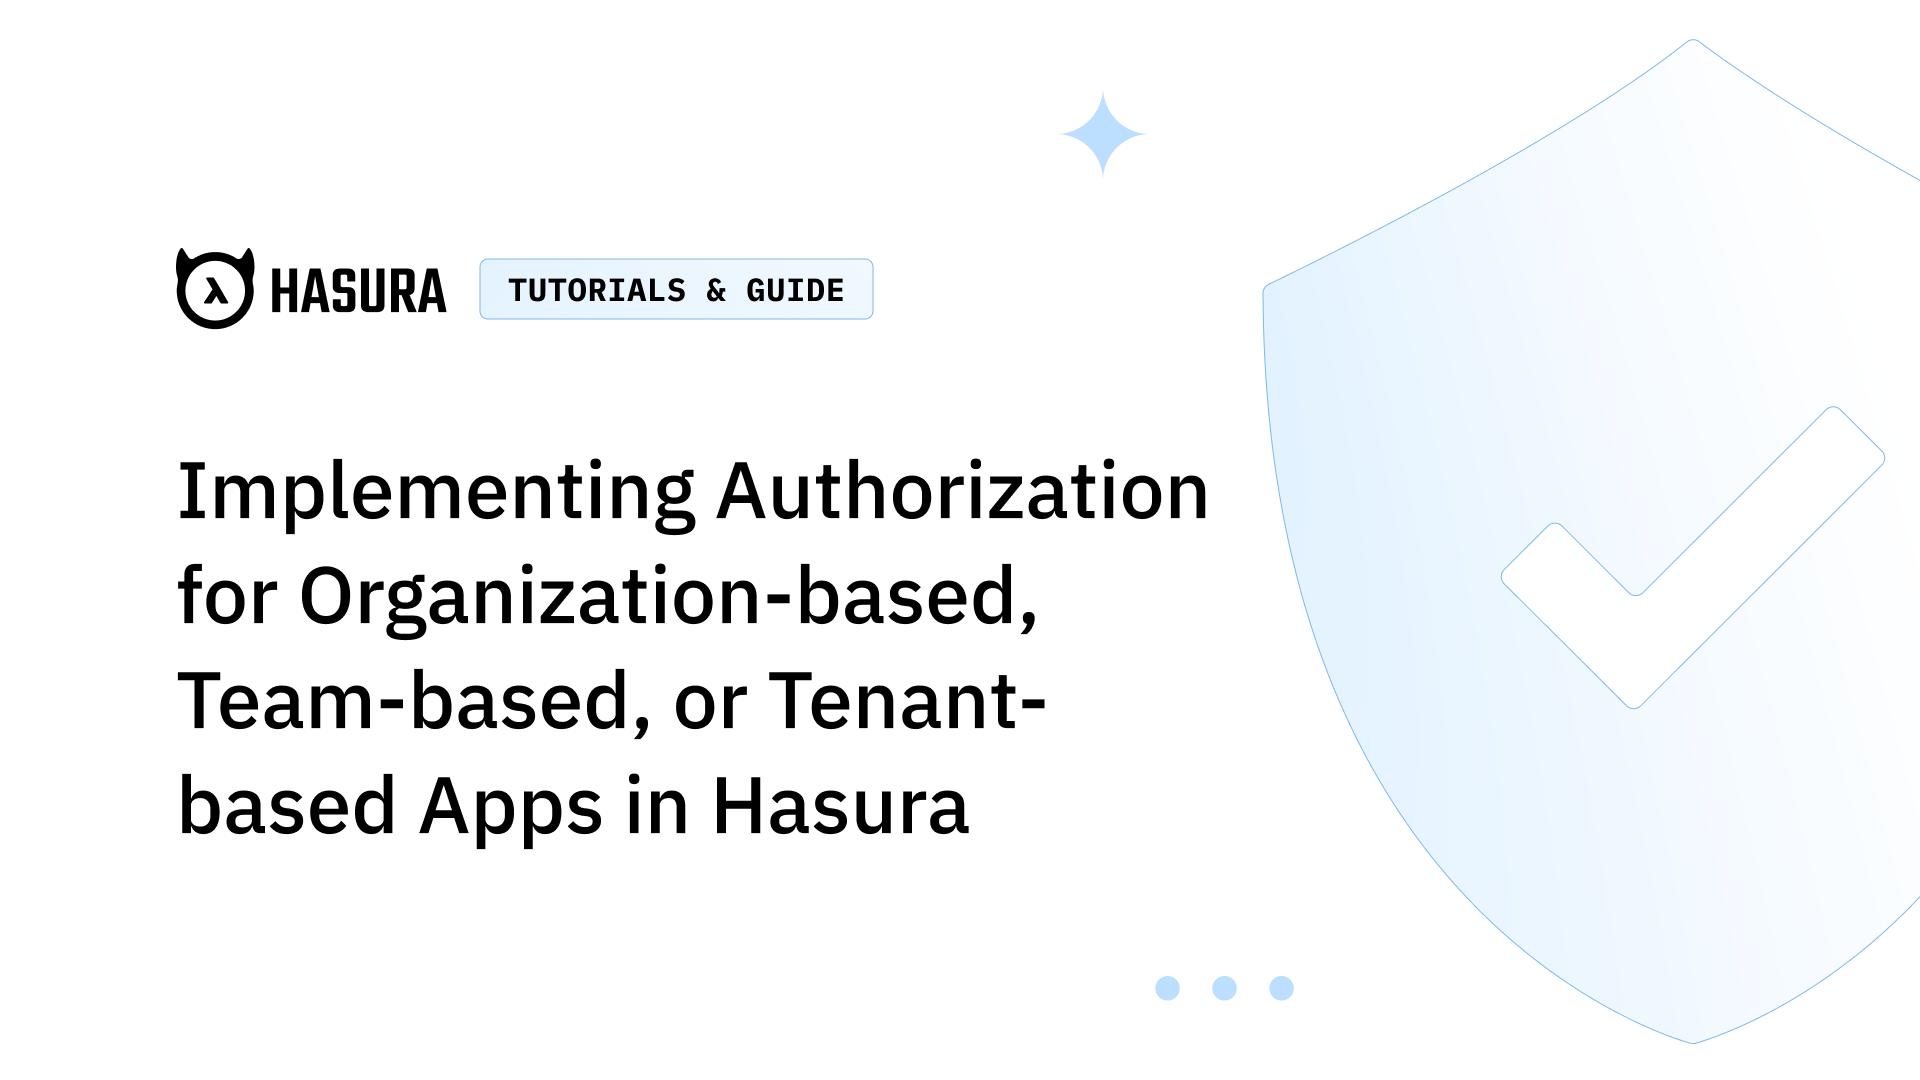 Implementing Authorization for Organization-based, Team-based, or Tenant-based Apps in Hasura